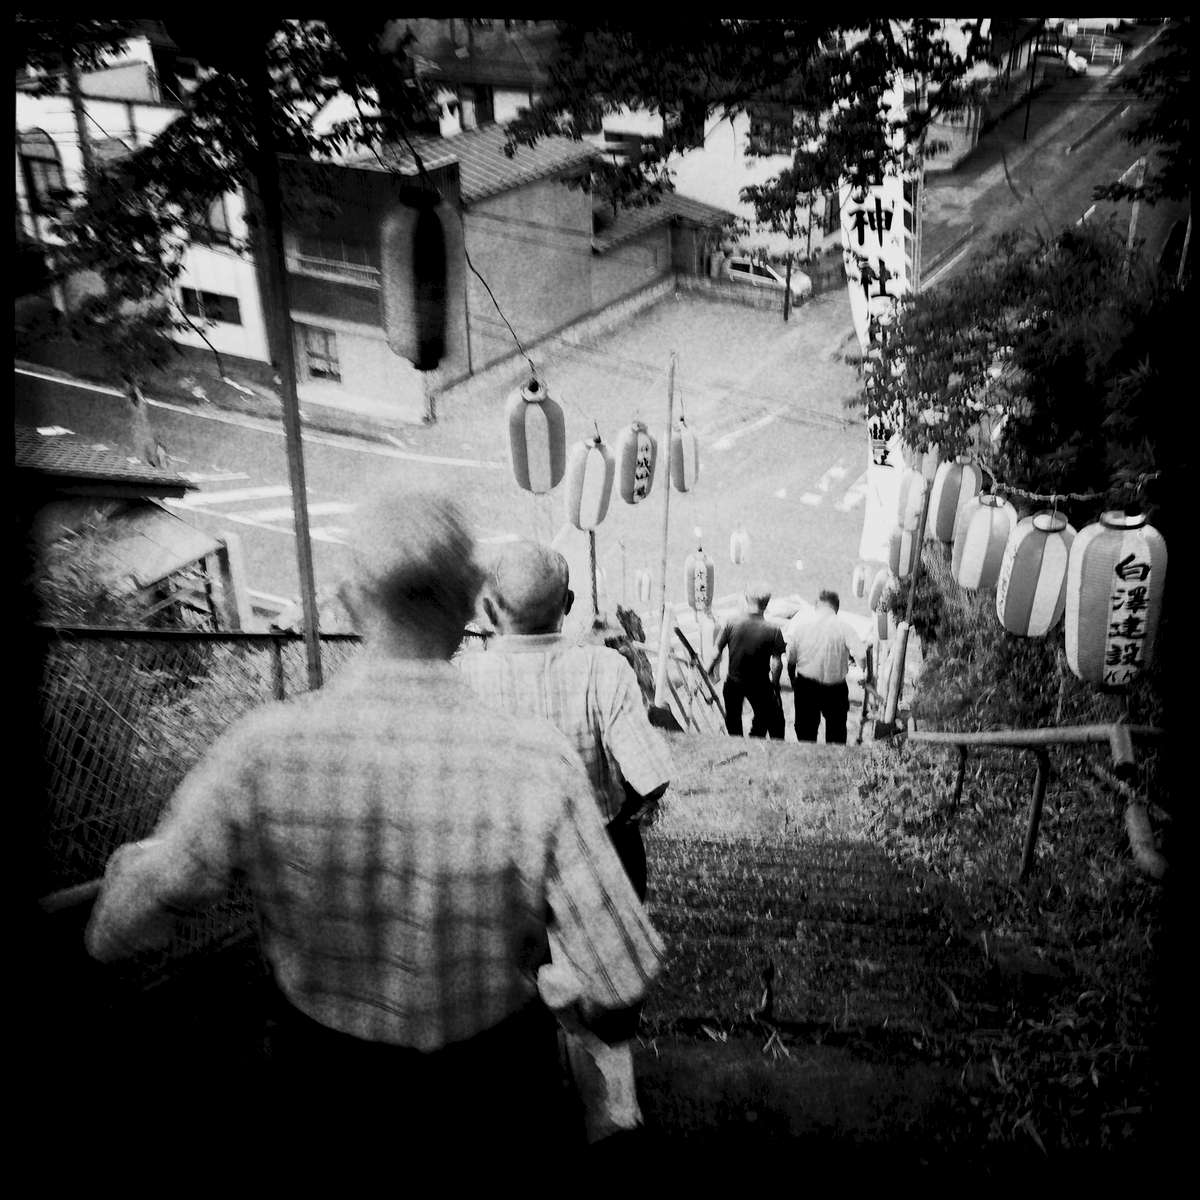 Old people, or hard to see the young, during a summer event at Atago shrine. July/ 2014, Motomiya.